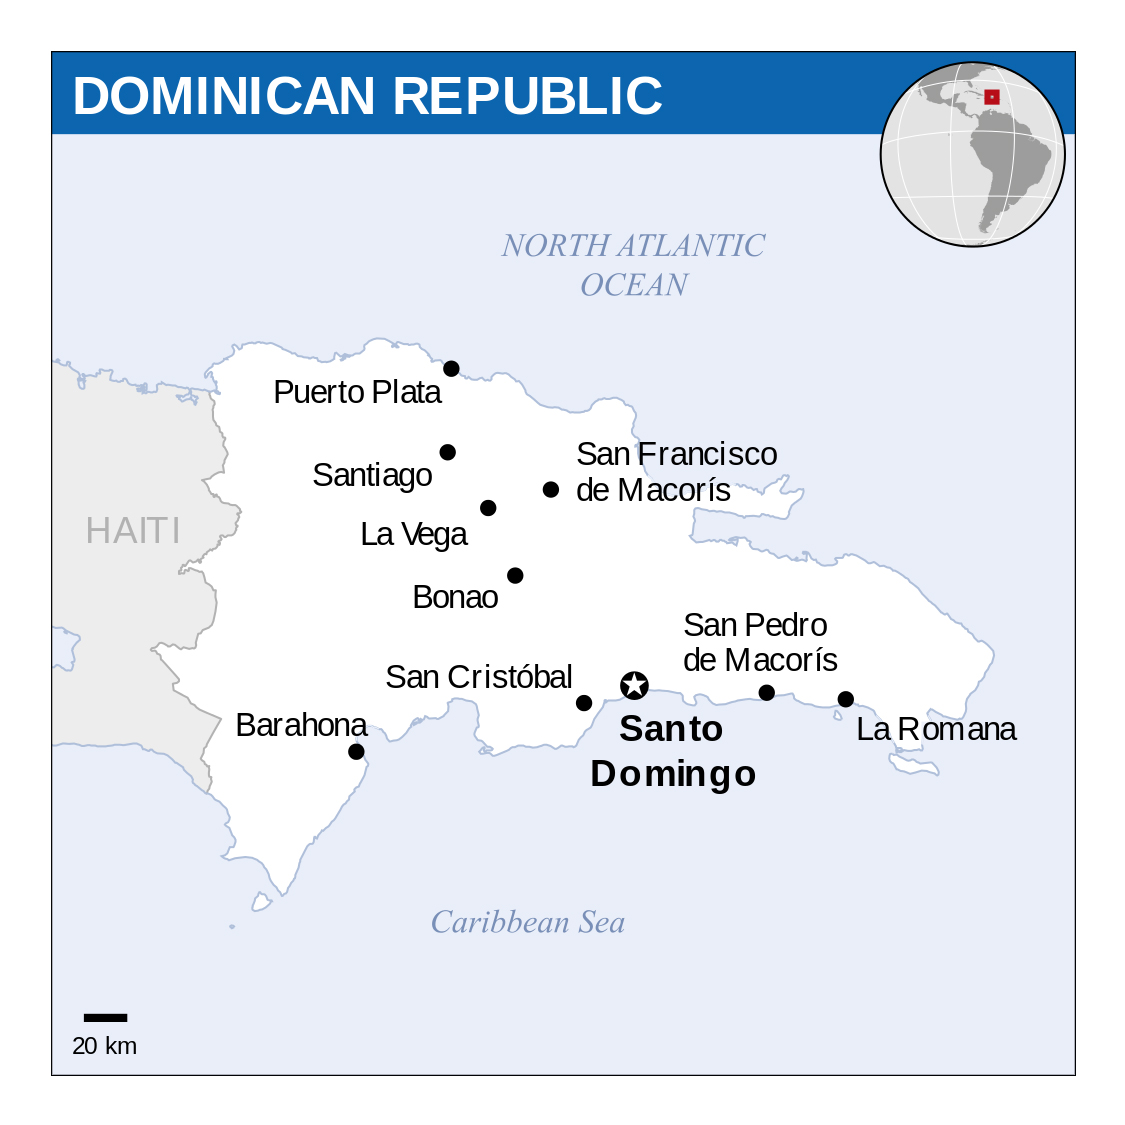 Detailed political map of Dominican Republic with major cities